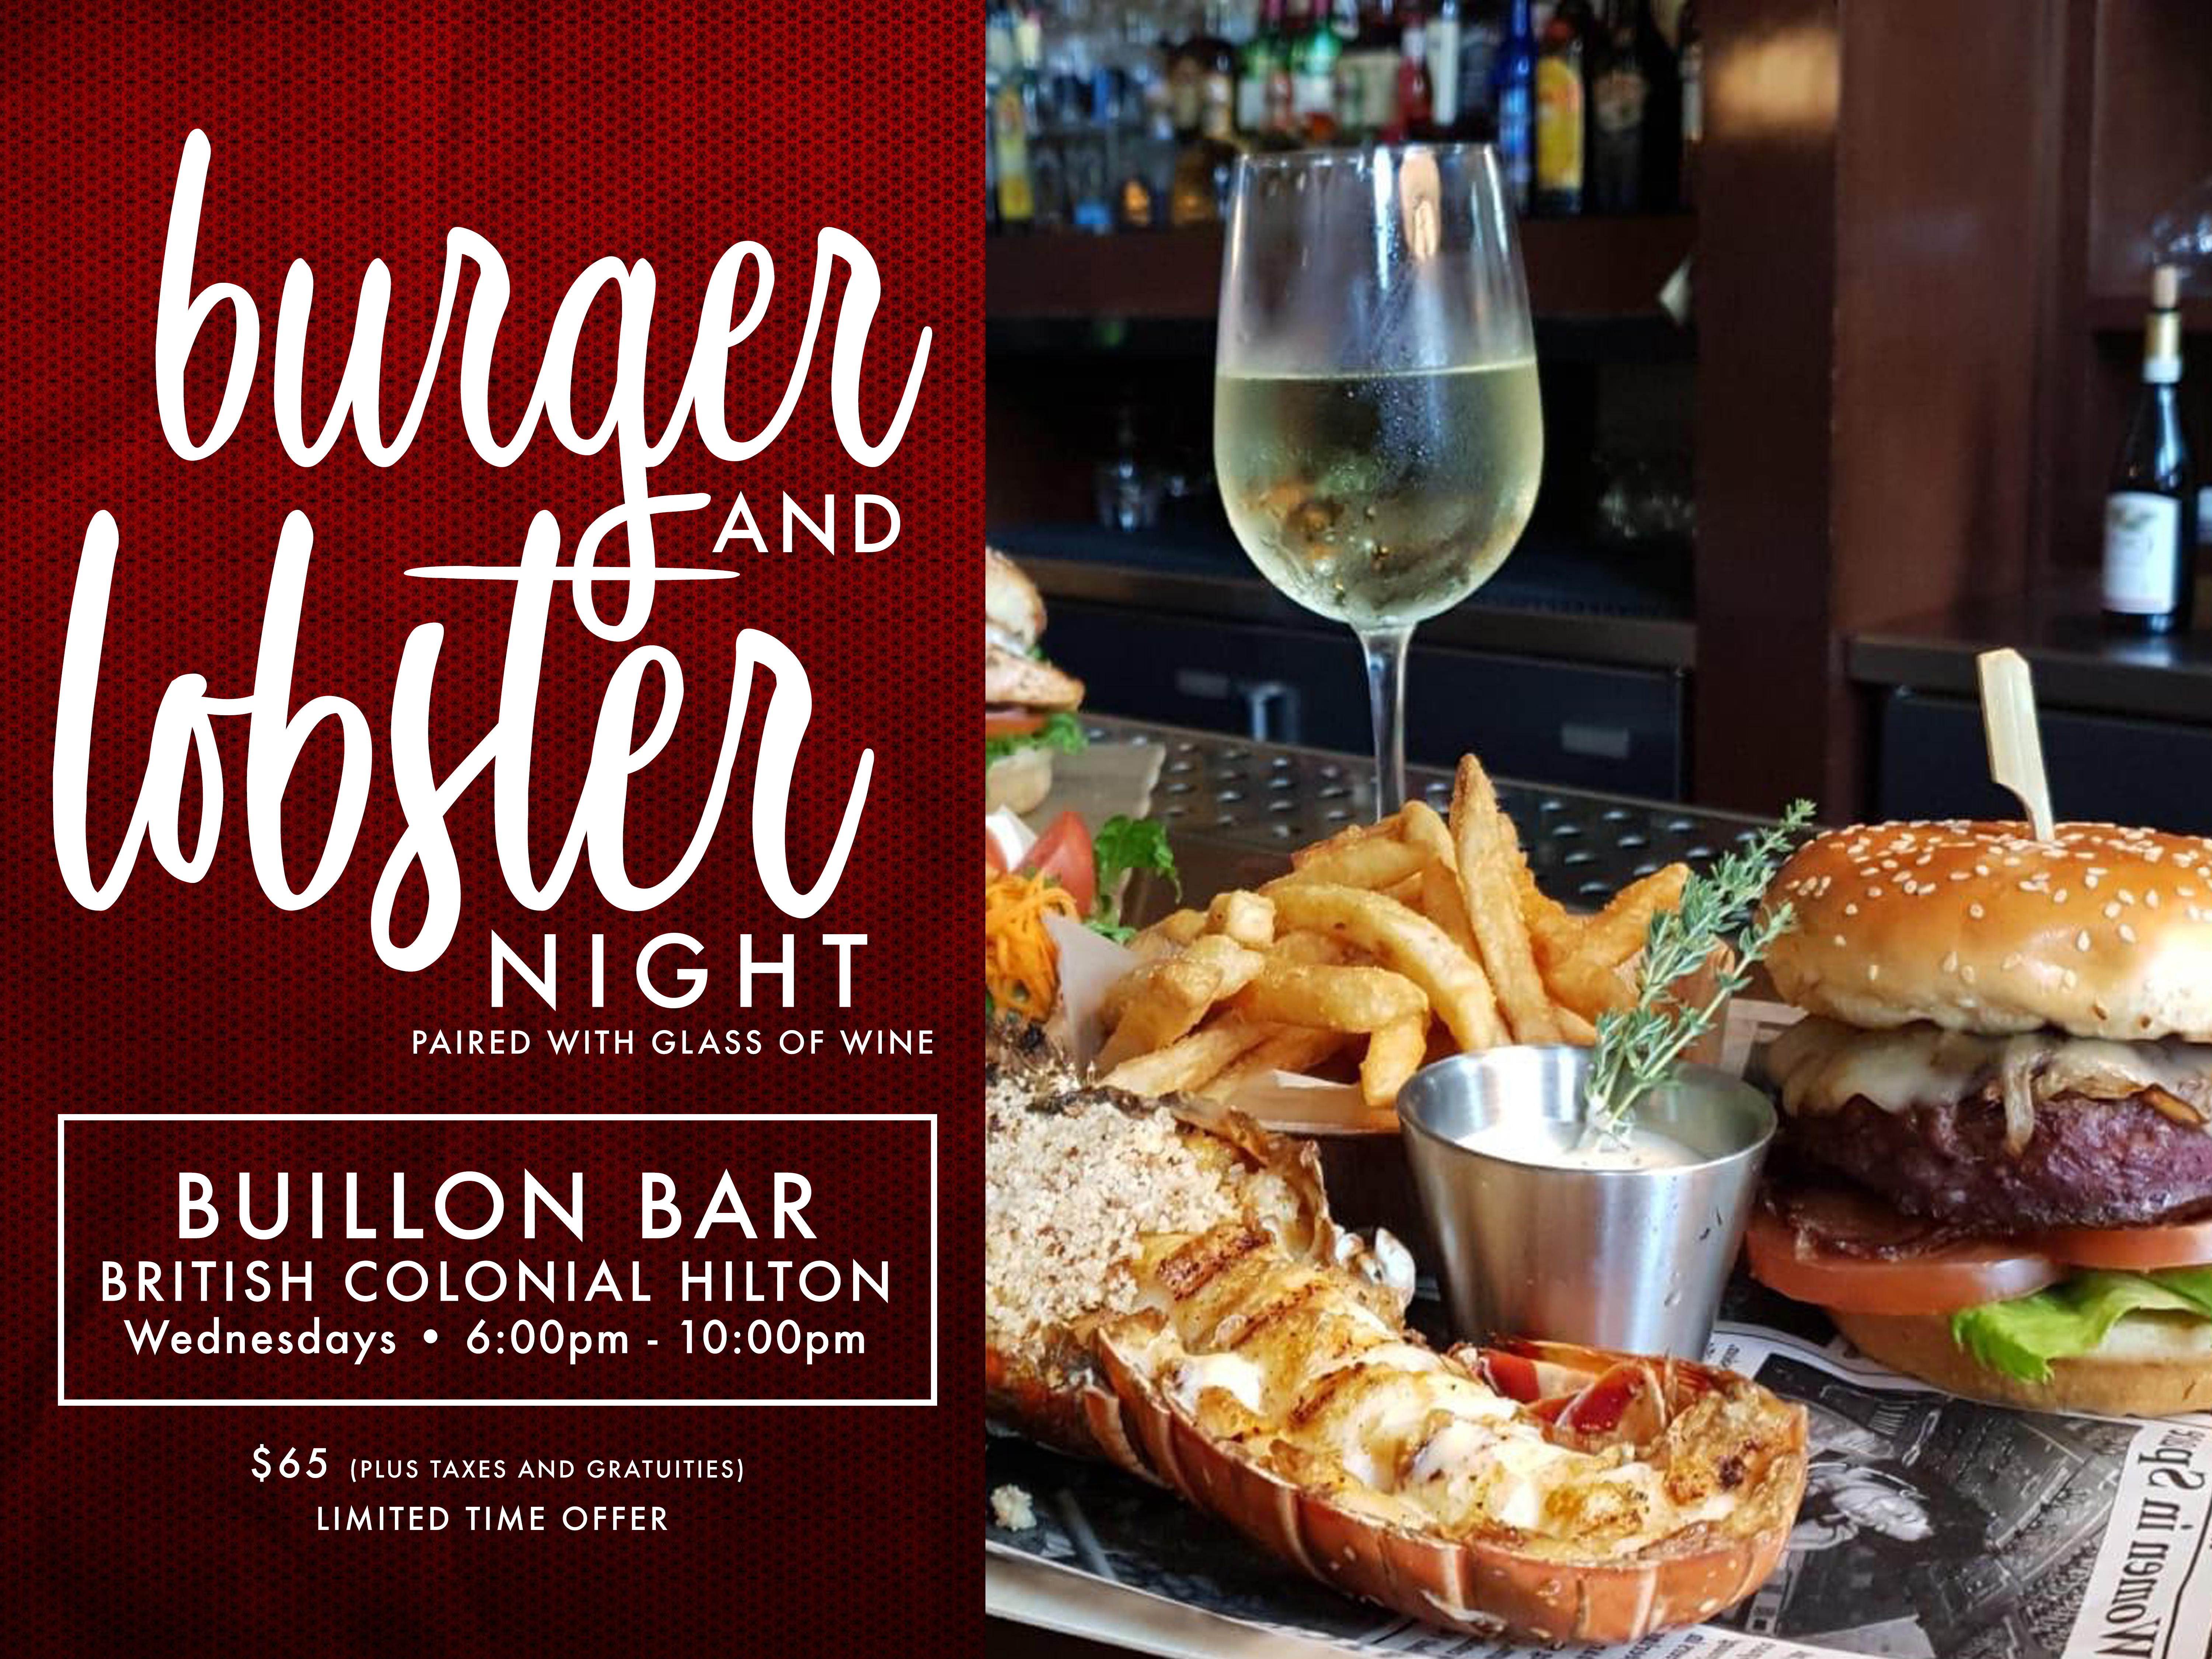 Burger and Lobster Night at the British Colonial Hilton